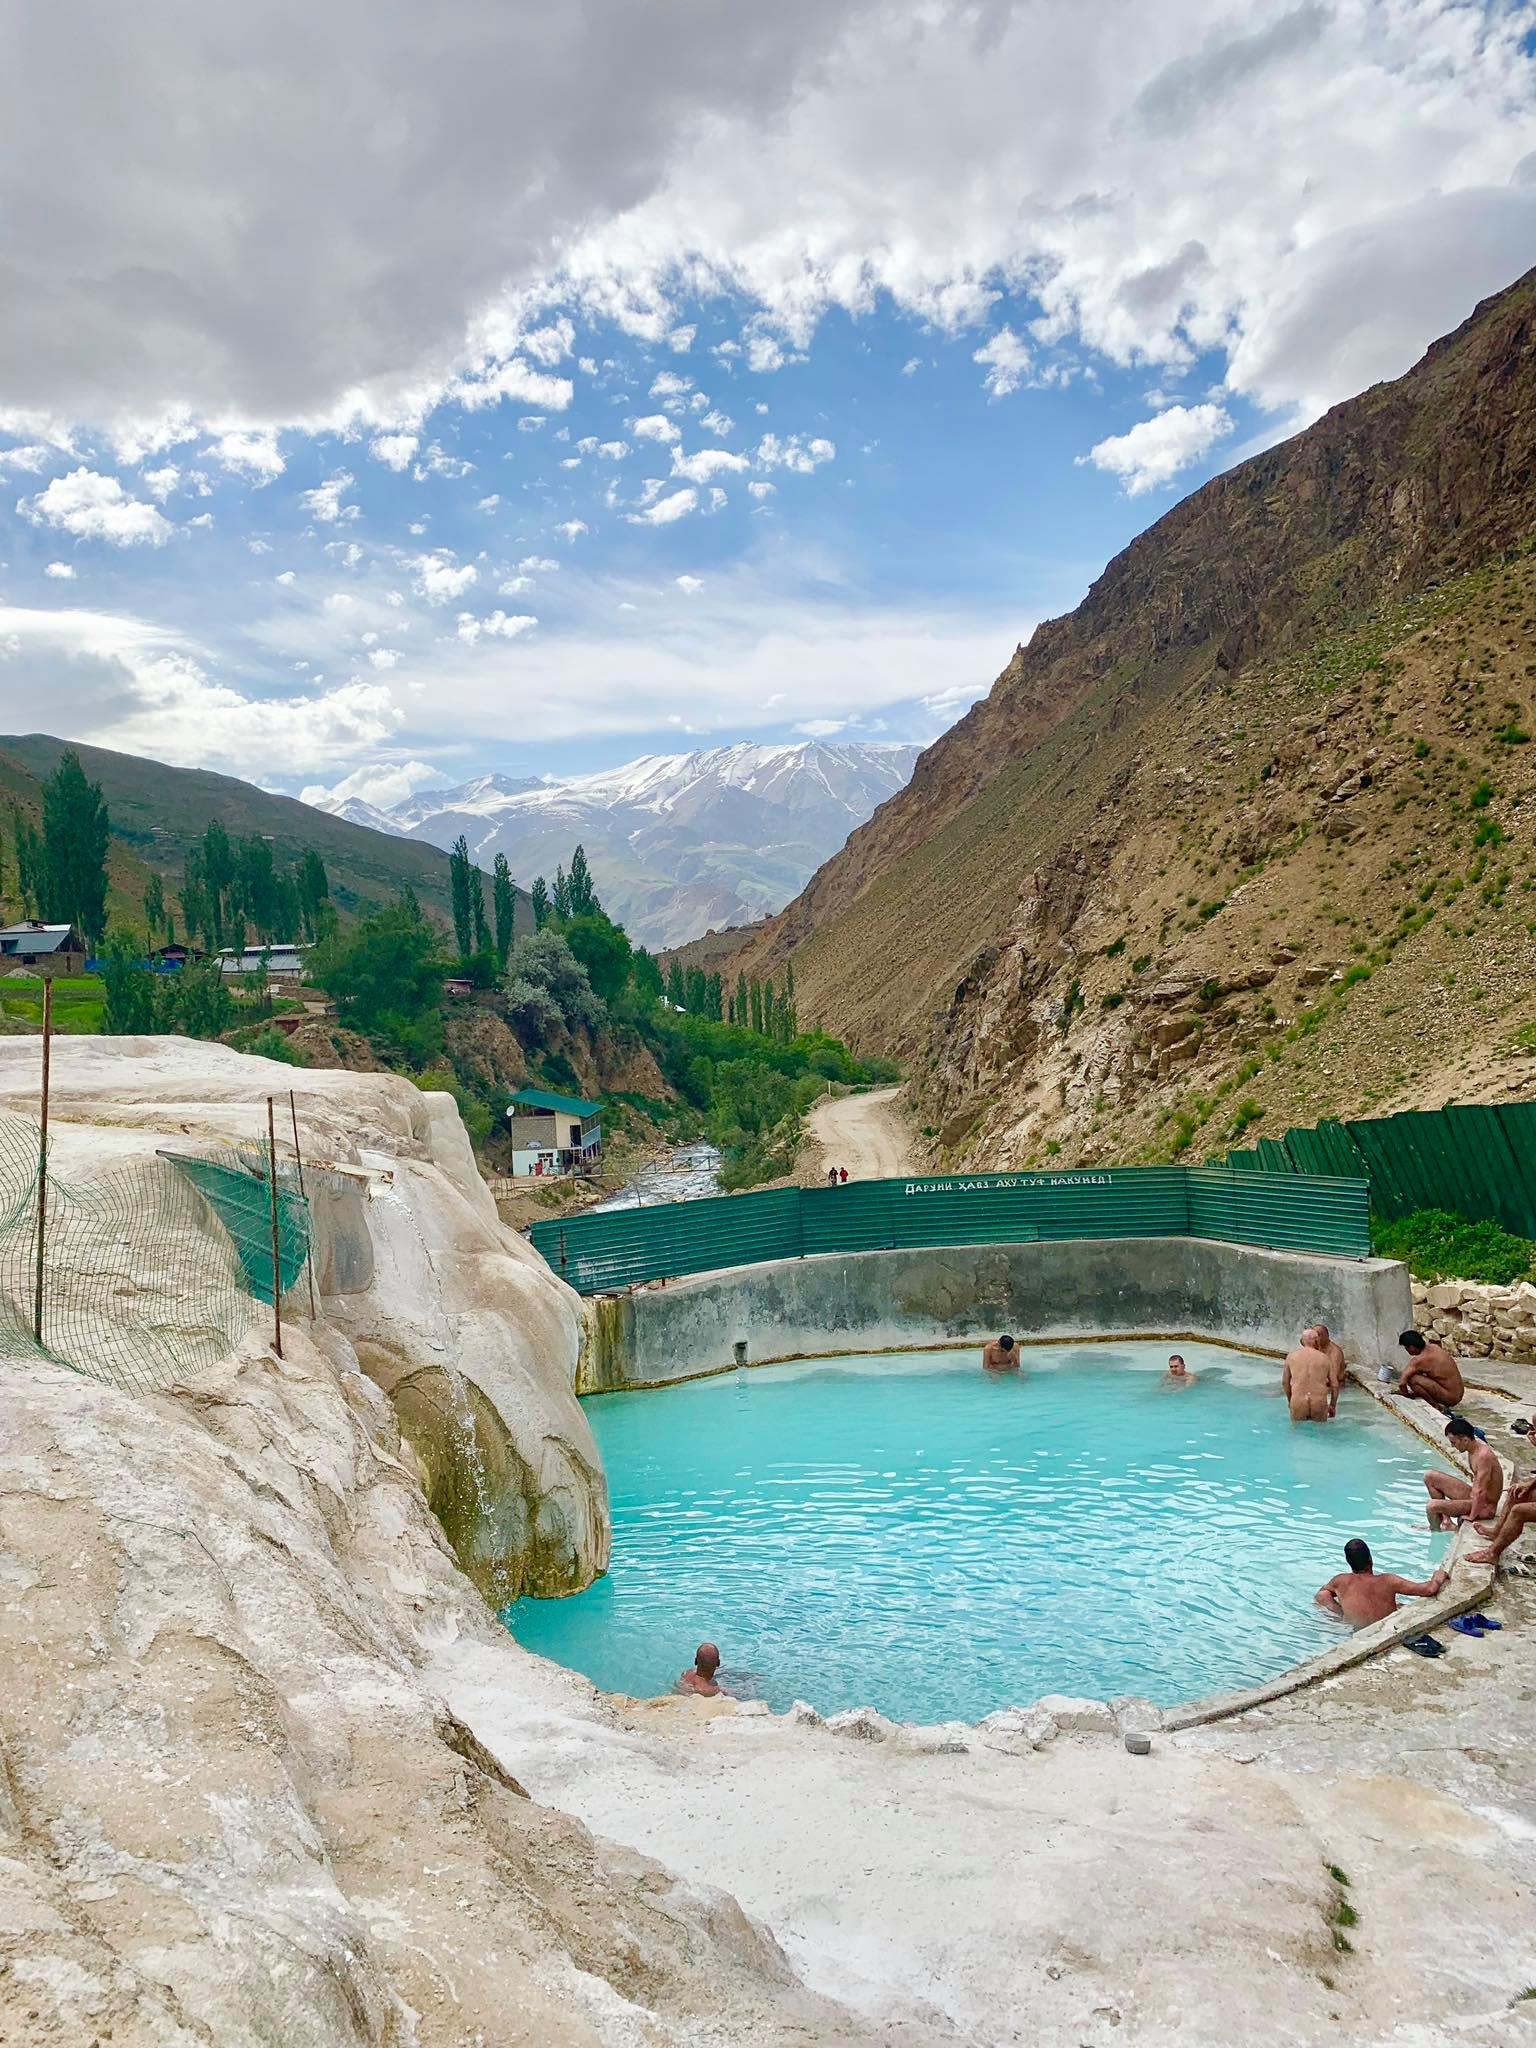 13 Things You Should Not Miss When You Travel the Pamir Highway in Tajikistan1